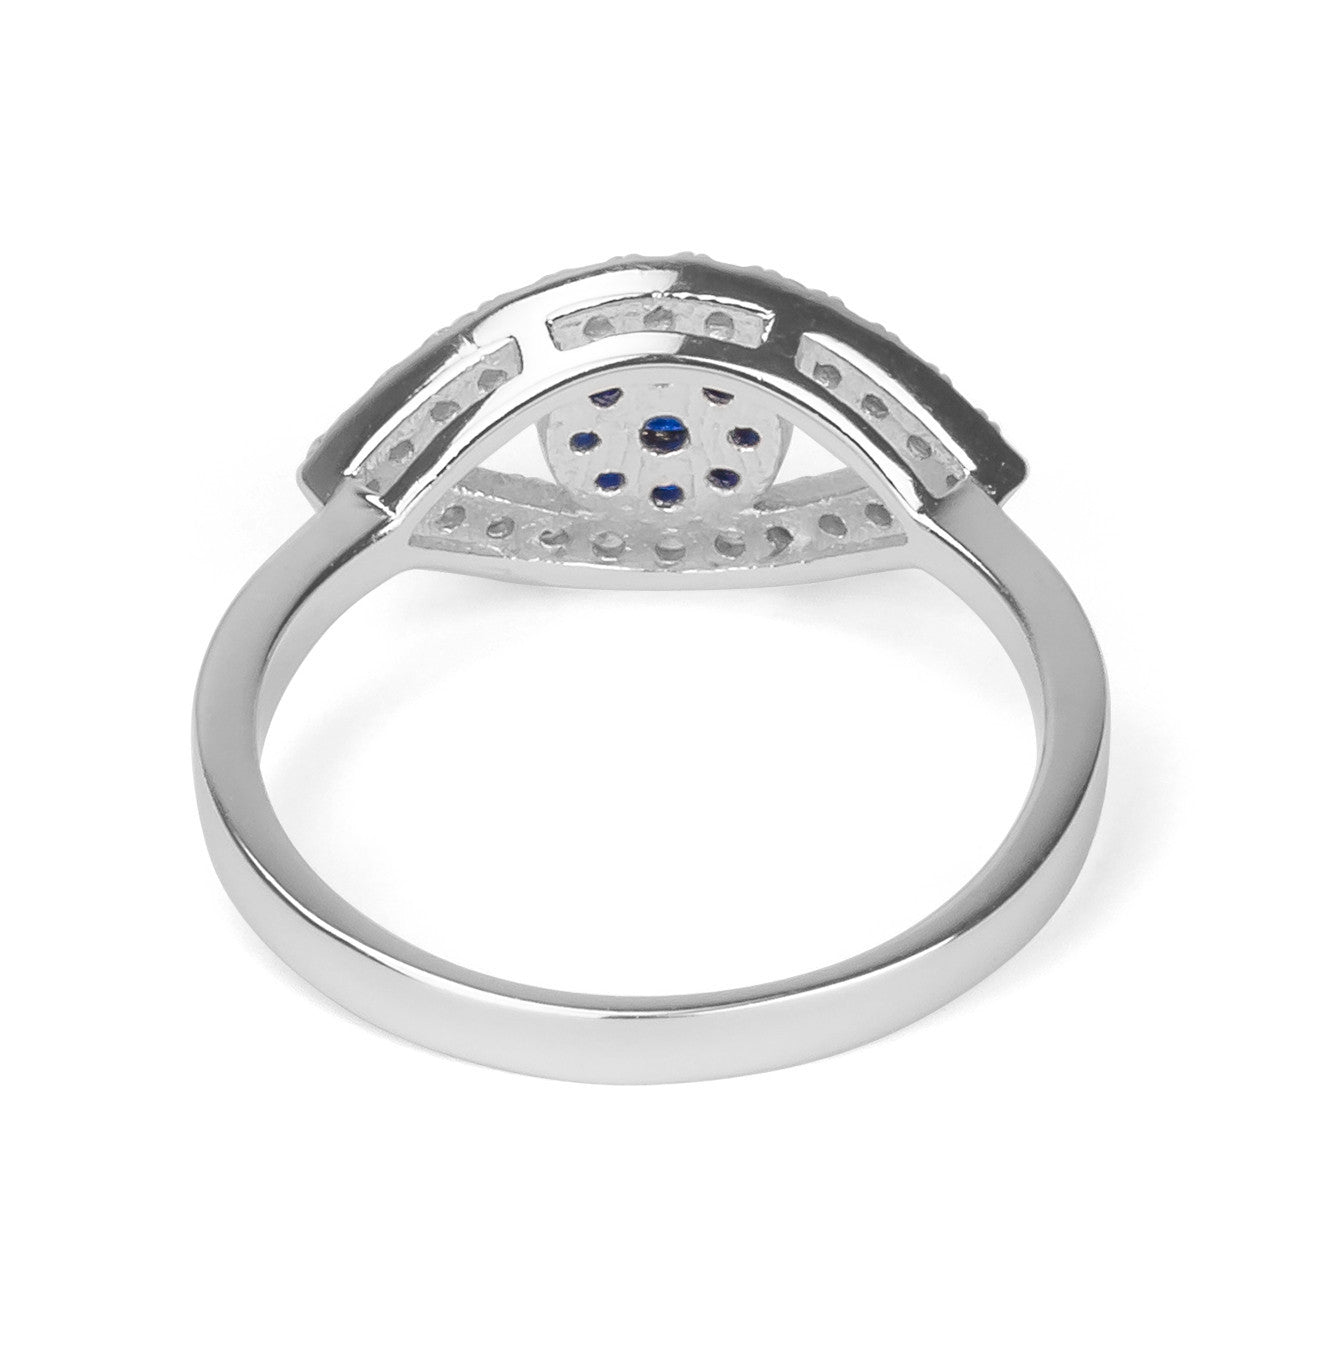 Evil Eye Pave Zirconia Ring Silver 925